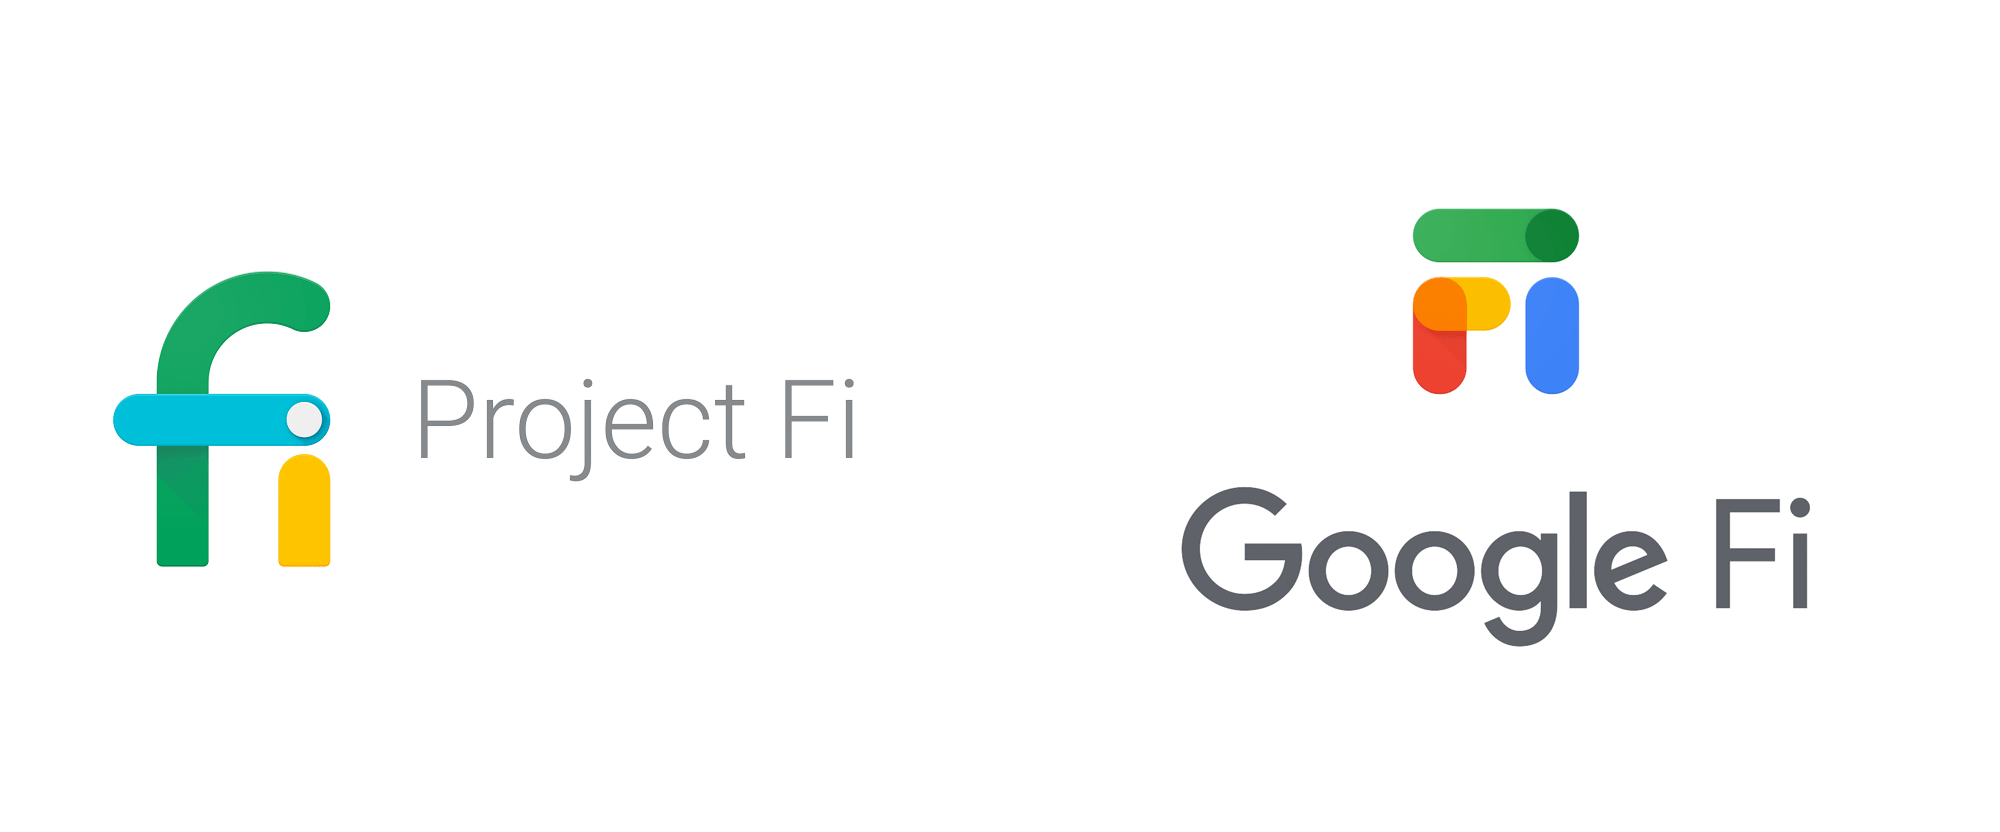 New Name and Logo for Google Fi